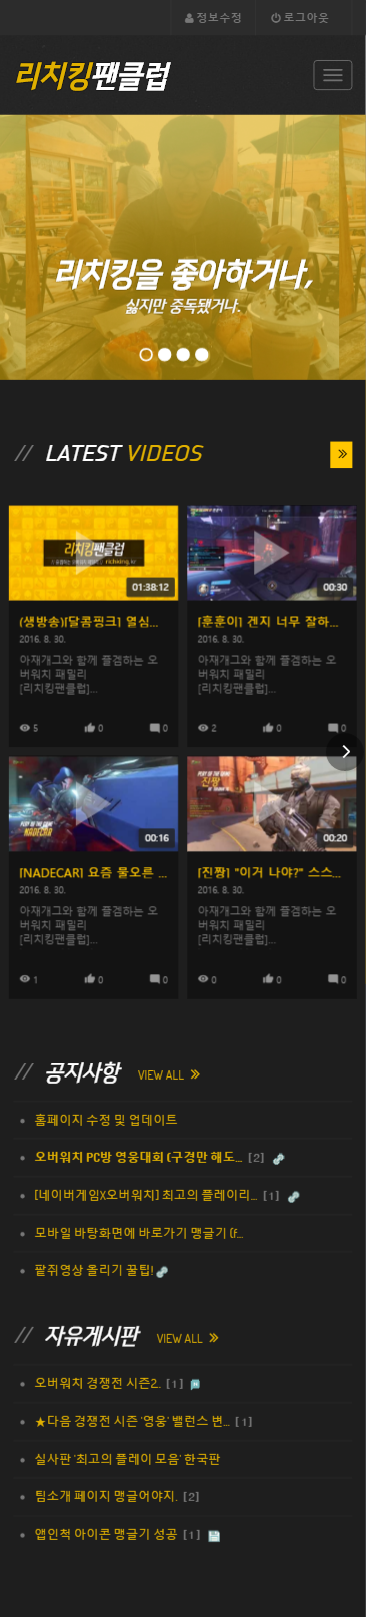 screencapture-richking-kr-1472544196428